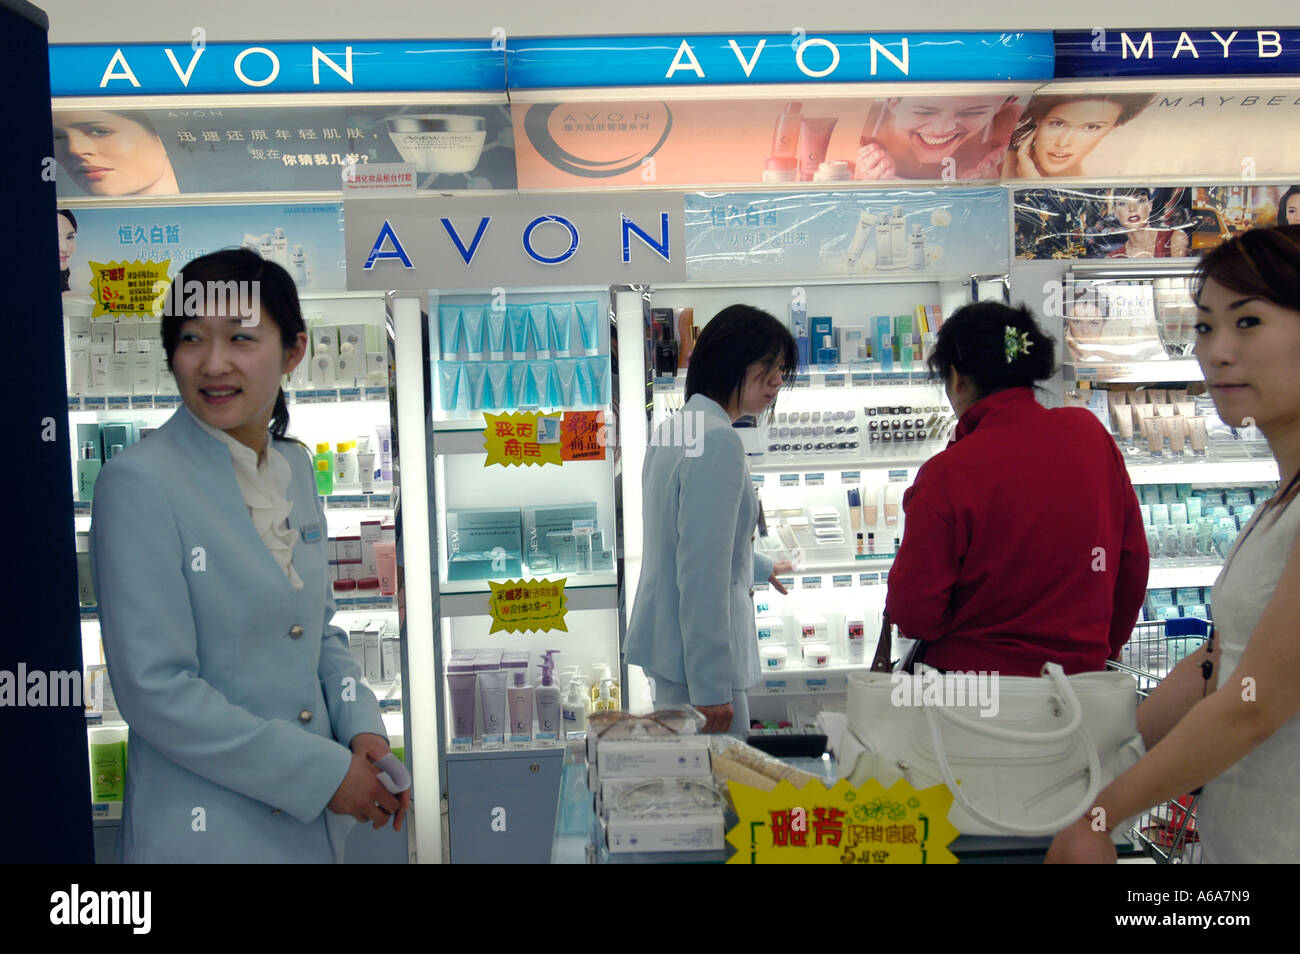 avon products china entry Avon products, inc (avon)  north america central and eastern europe western europe, middle east and africa asia pacific, and china (source: 10-k).